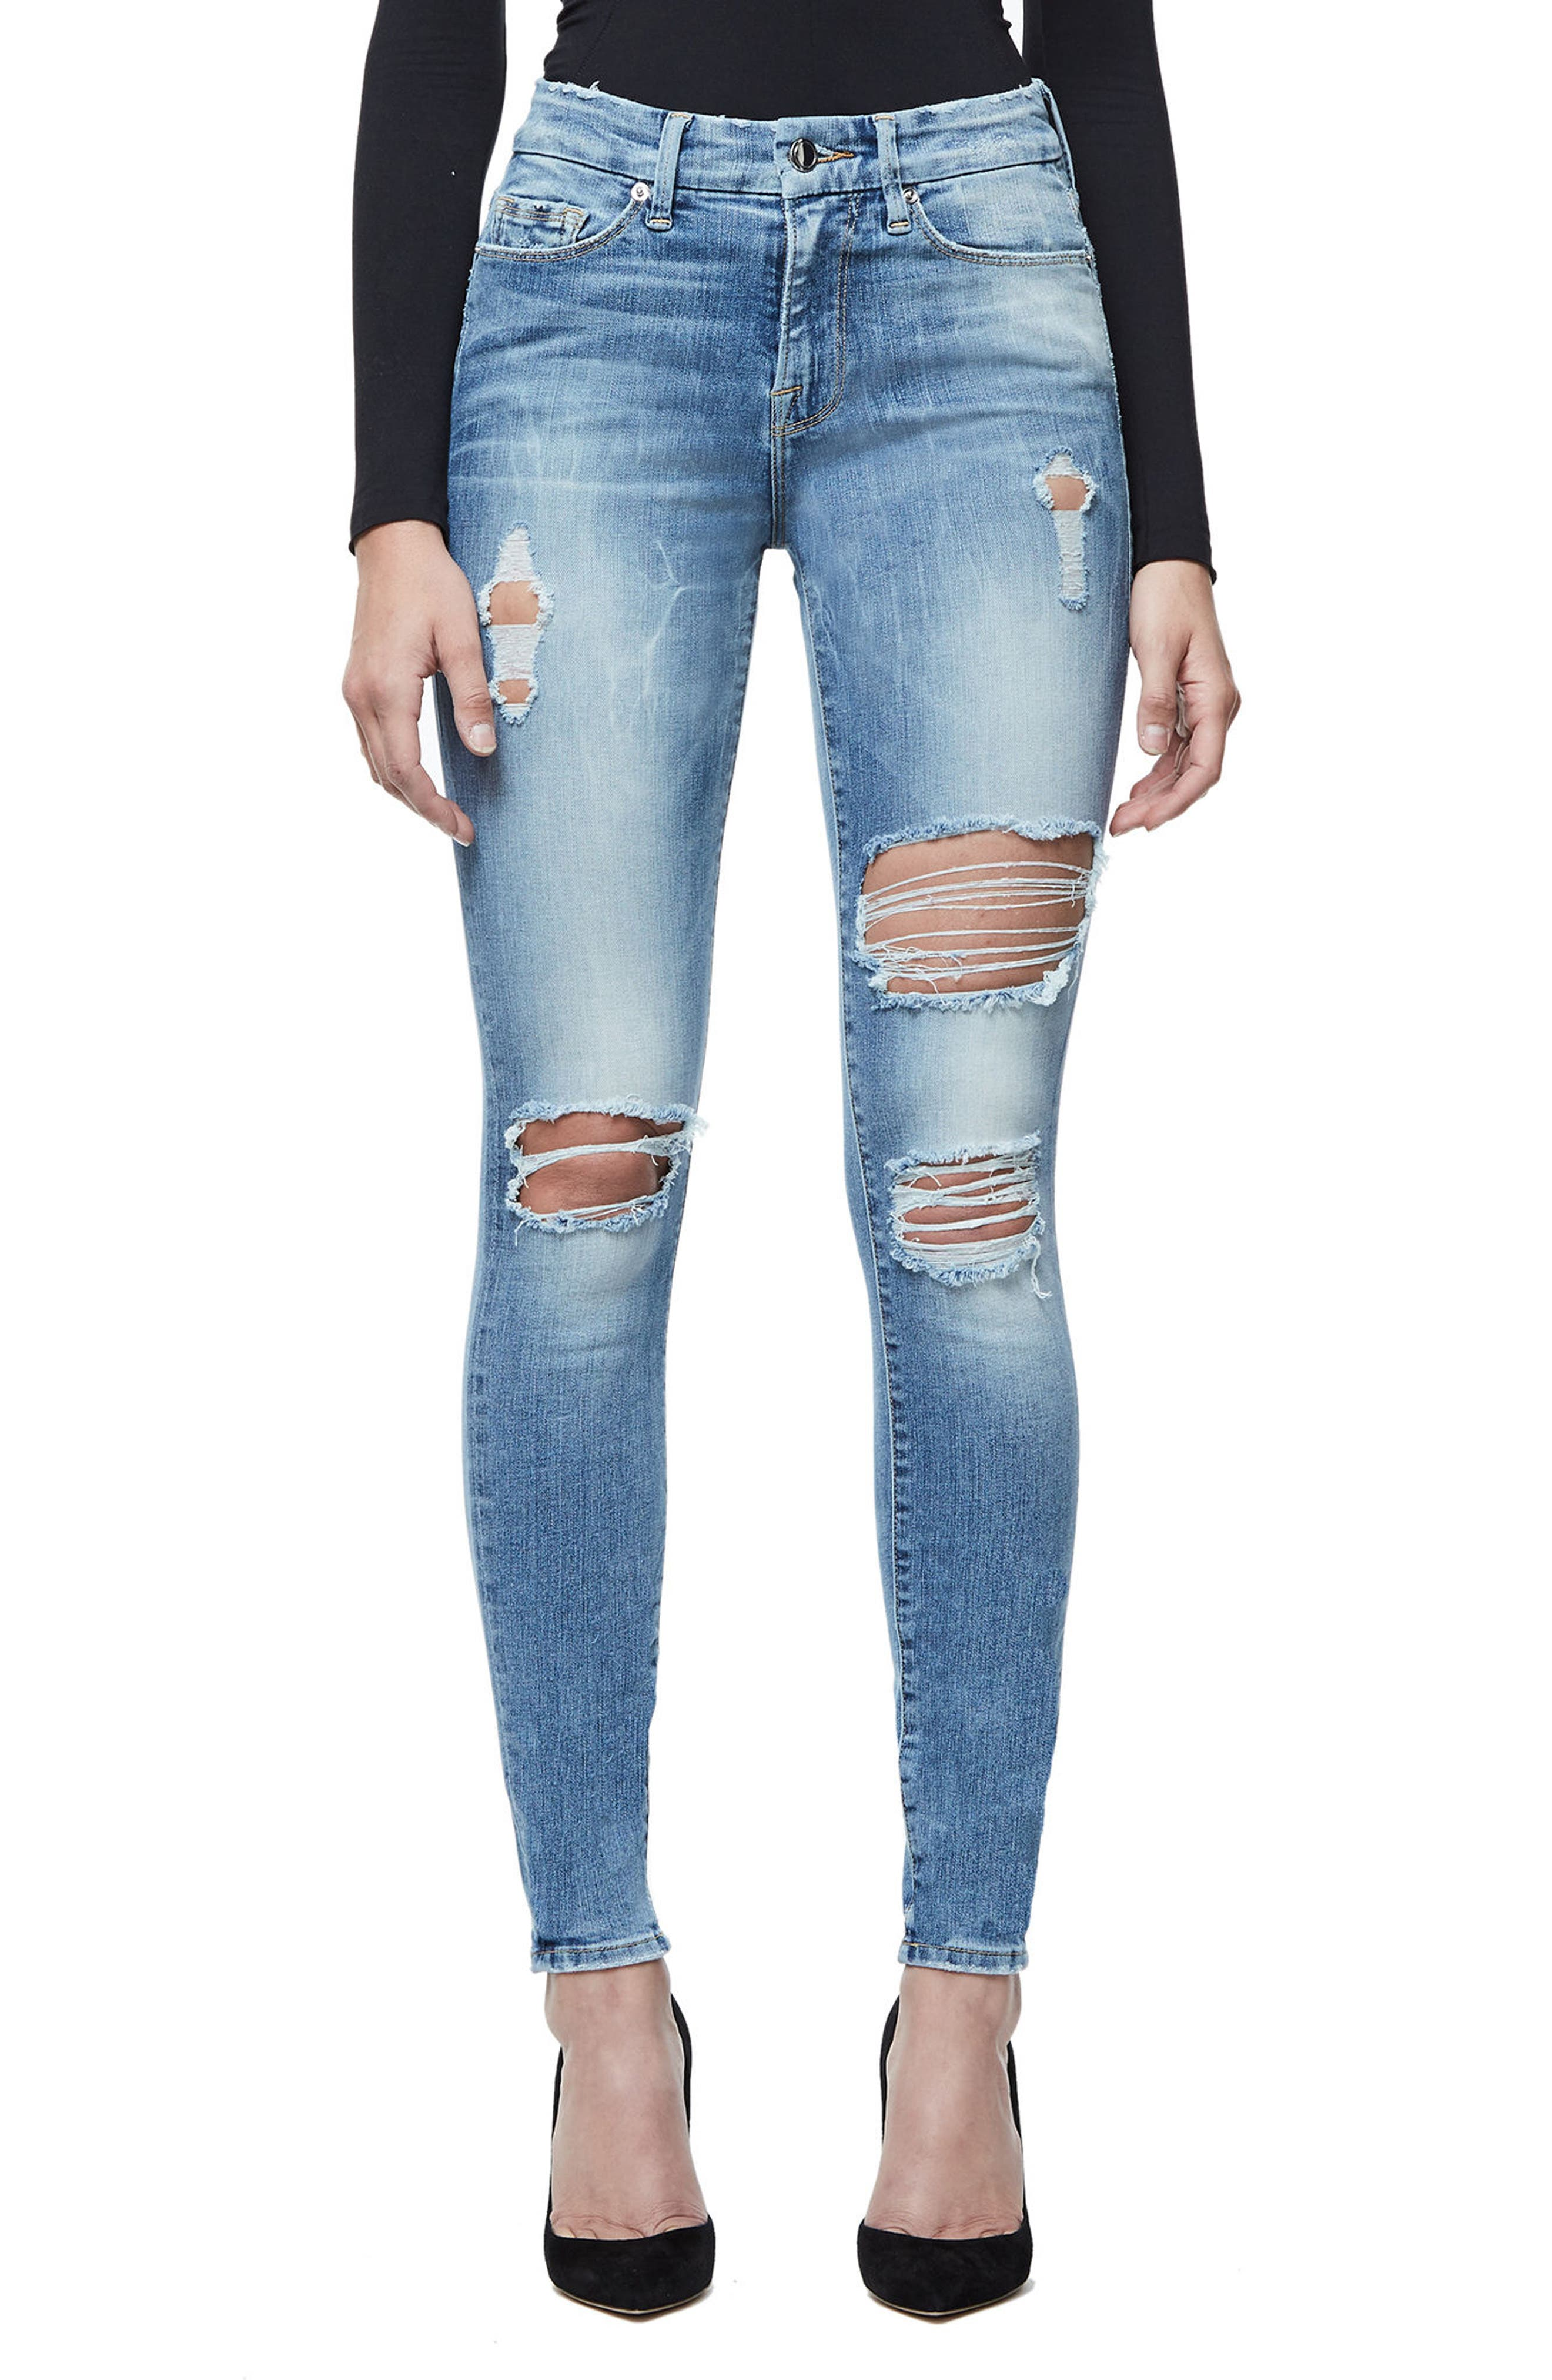 Good Legs Ripped Skinny Jeans,                         Main,                         color, Blue068